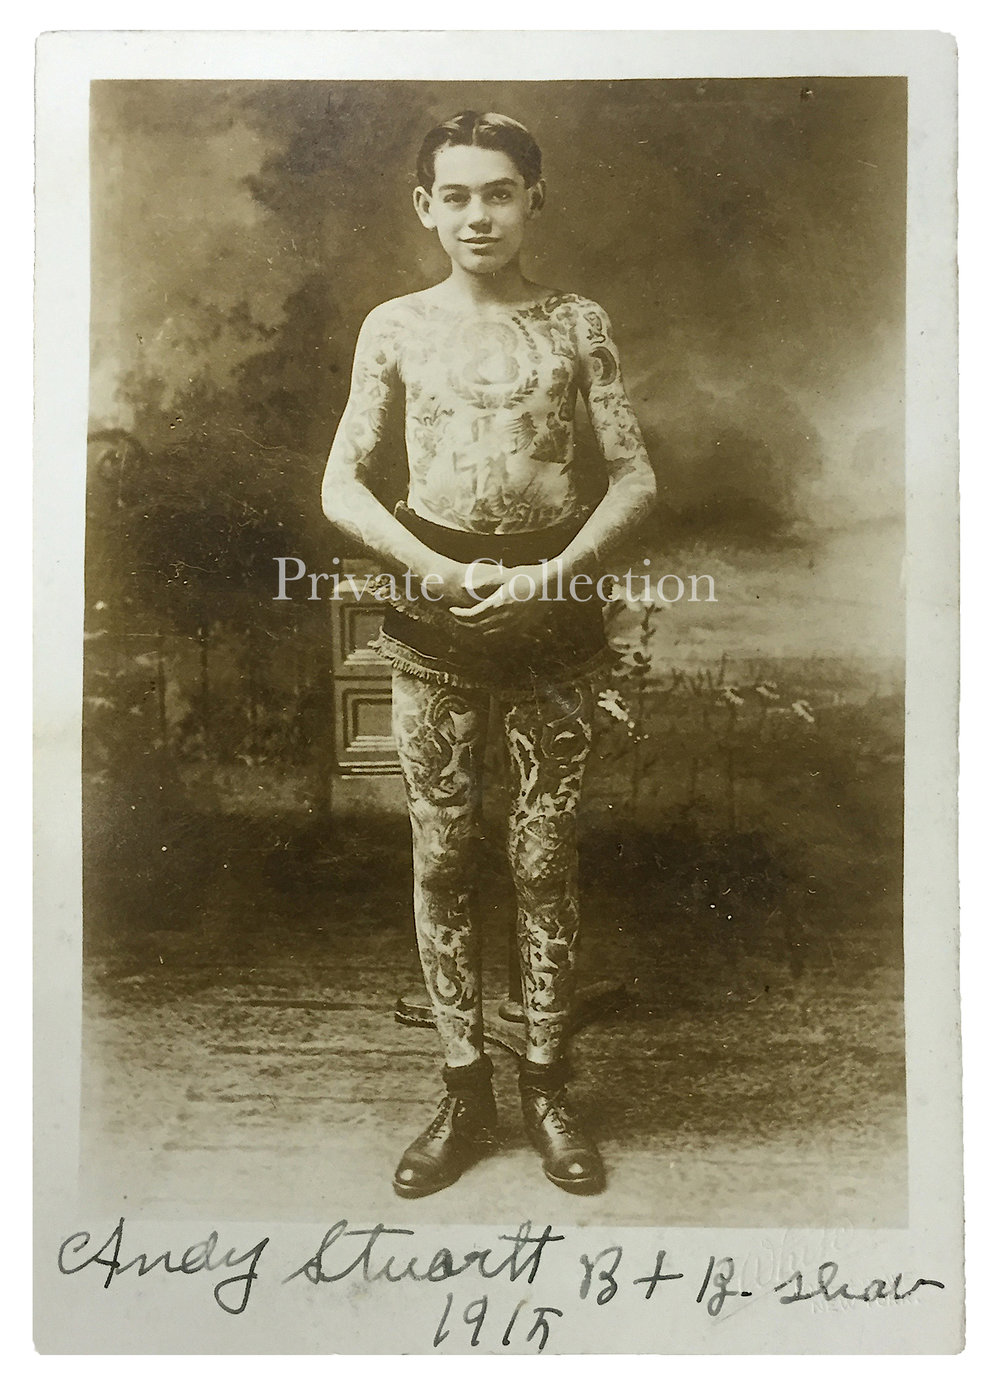 Andy Stuertz, Tattooed by Charlie Wagner, Photograph by White's Studio, 105 4th Avenue, New York, Duplicated From a Cabinet Card Photograph by William Ettlin, 17 Chatham Square, New York, ca. 1907.  Private Collection